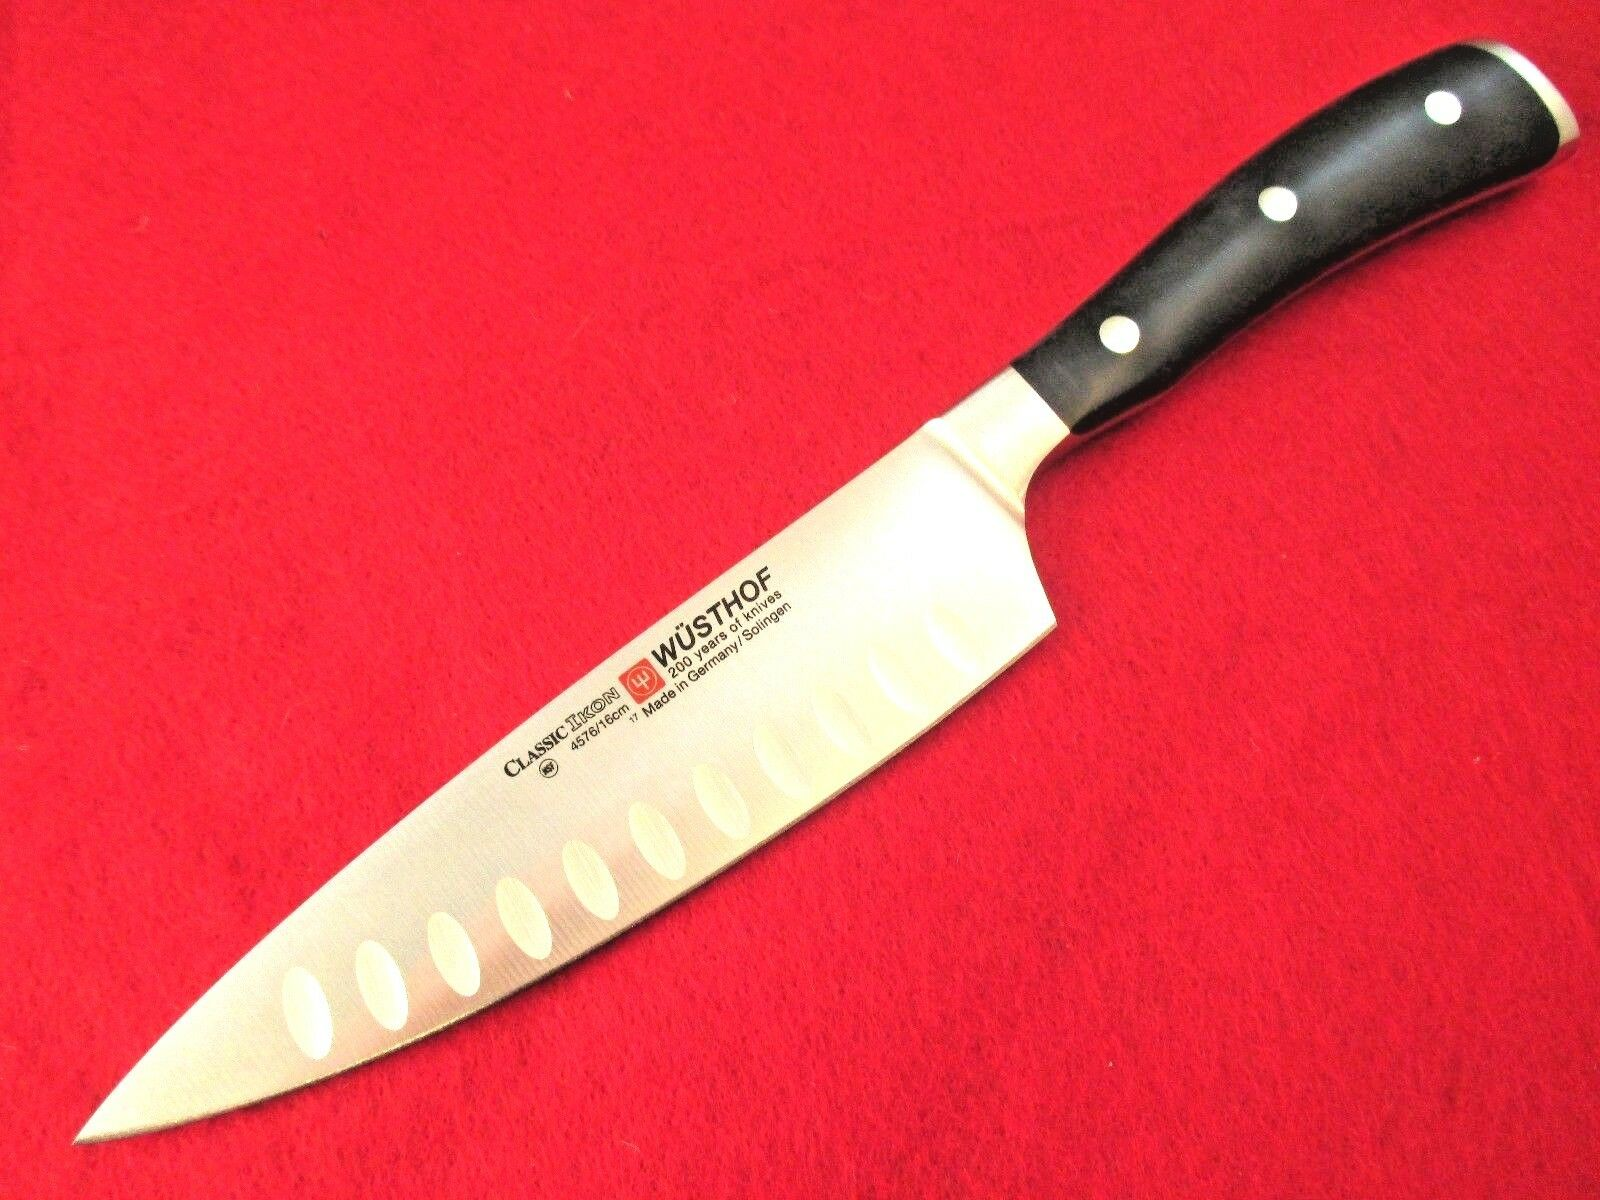 Wusthof Classic Ikon Hollow Ground 6 inch Cooks, Chefs Knife